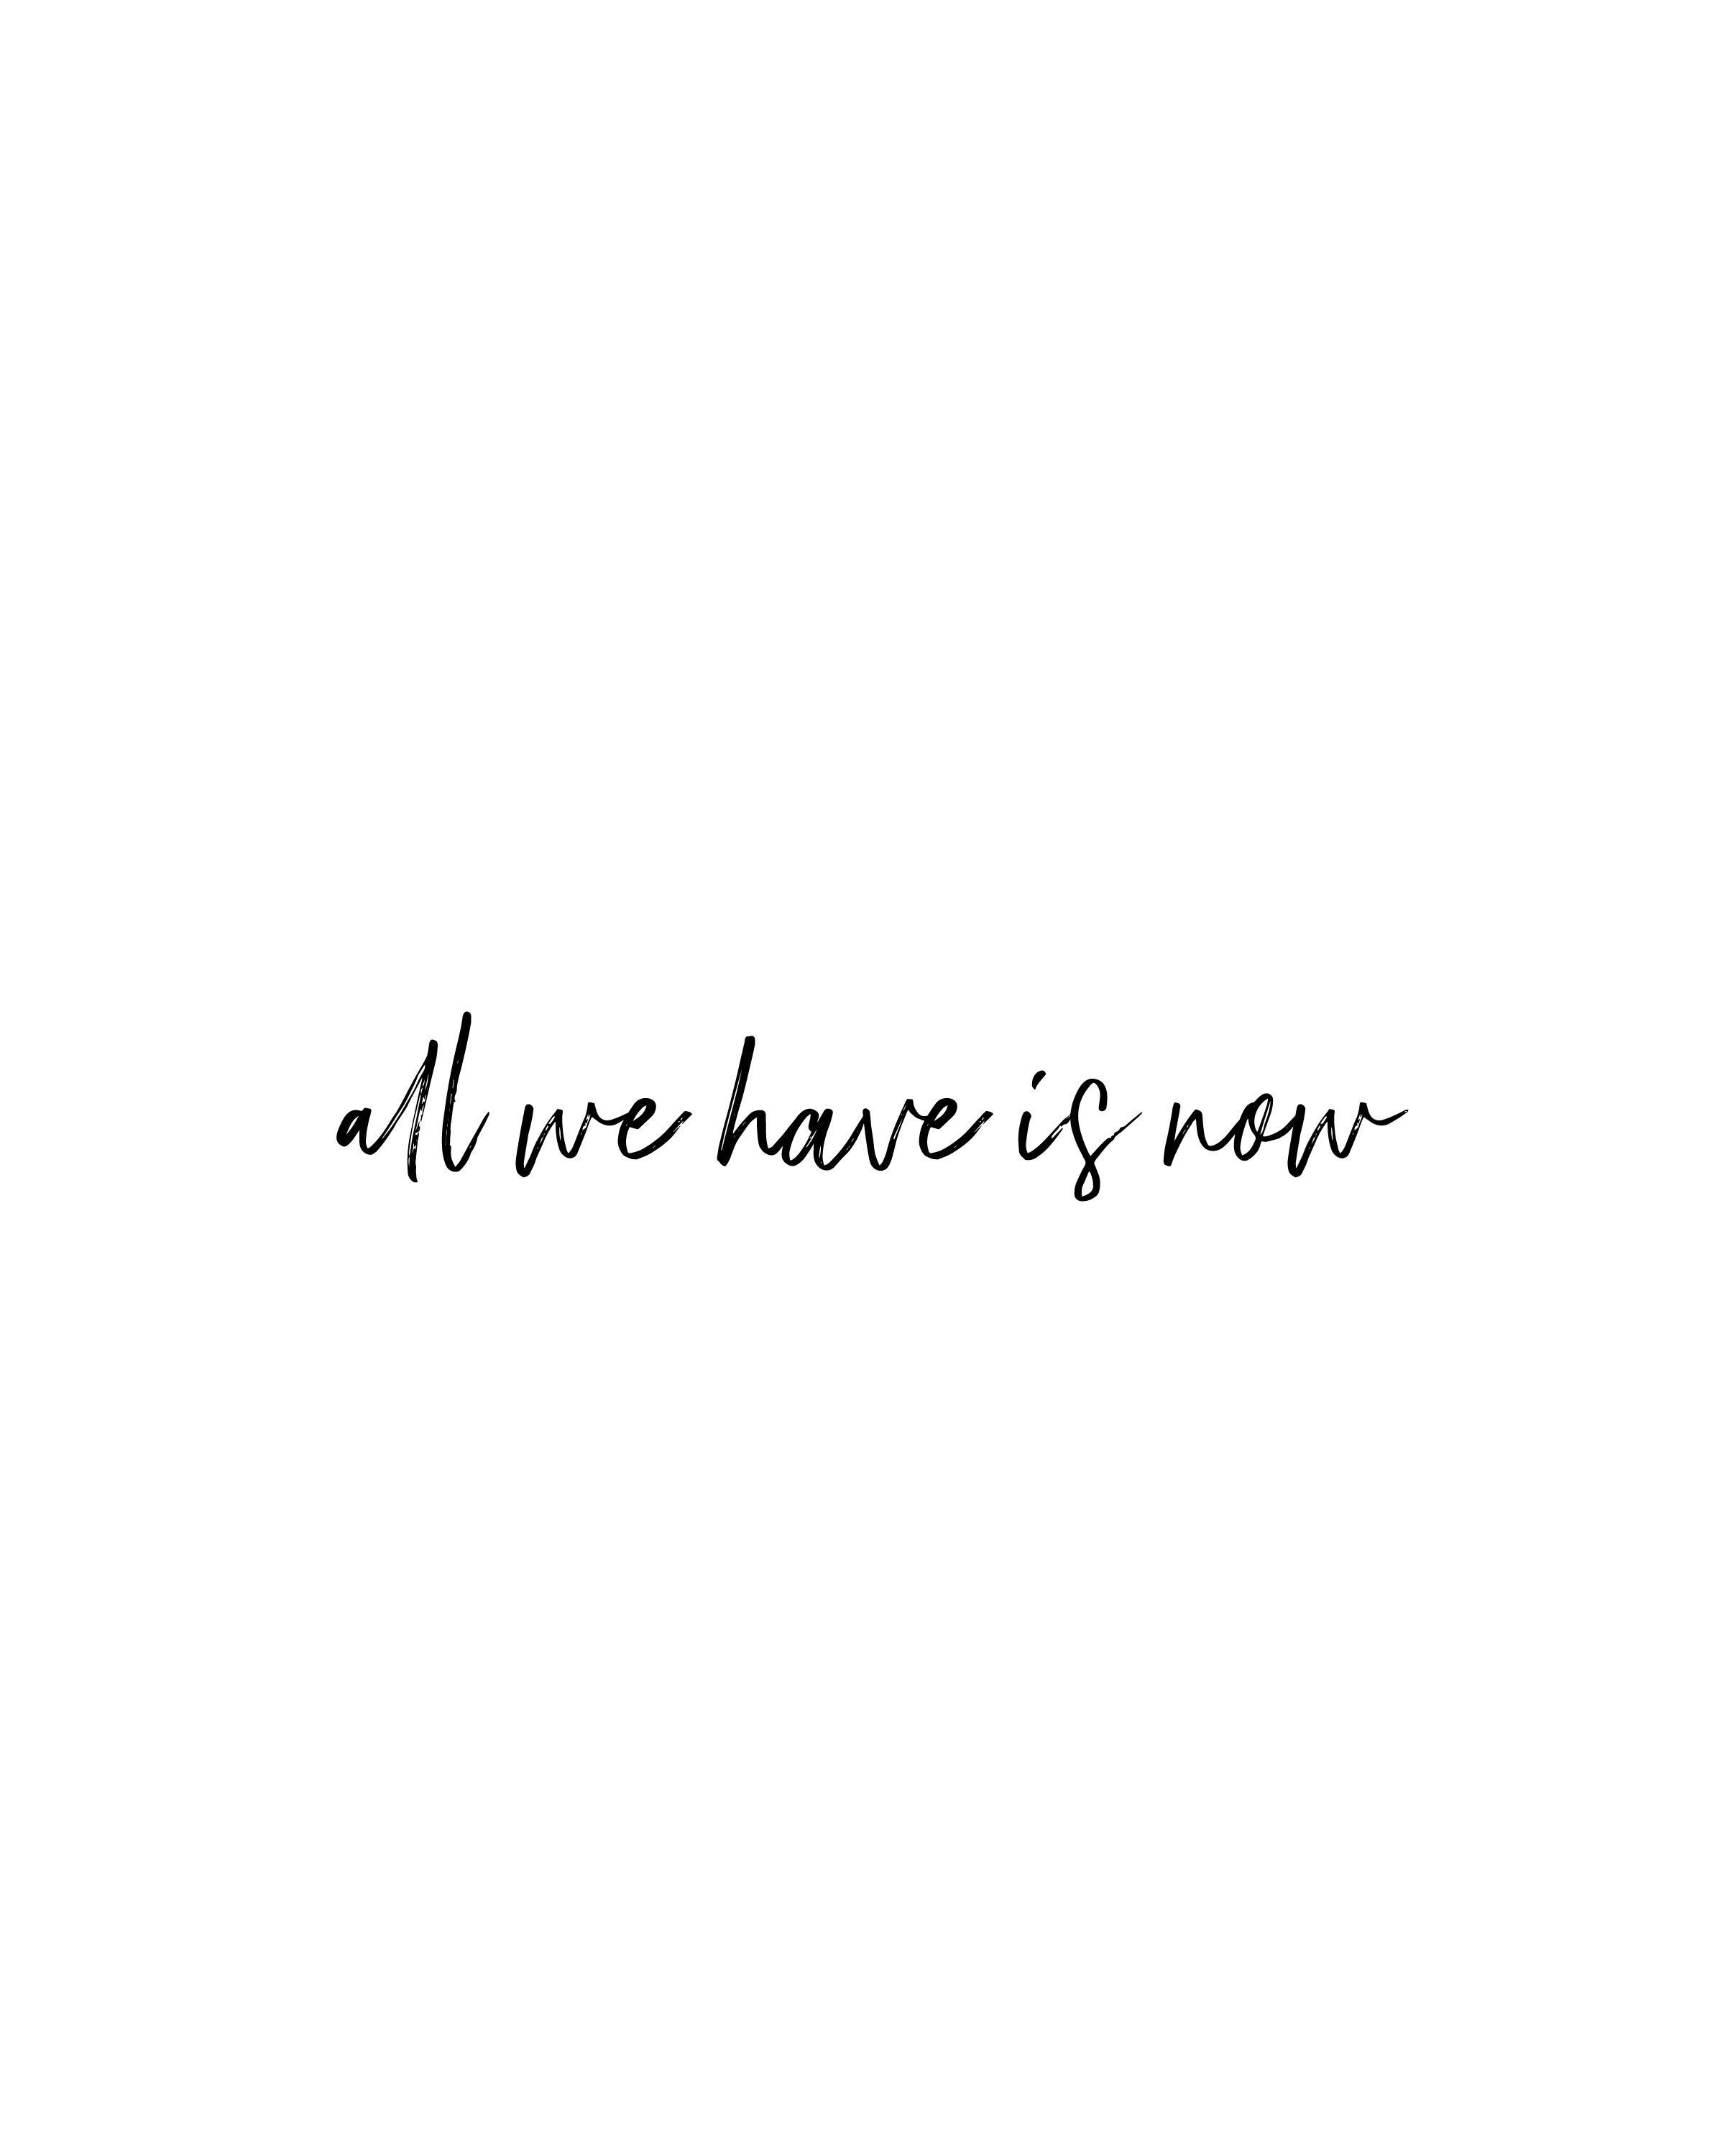 Printable Boho Lifestyle Quote | All We Have Is Now | Wall Art and Poster | Instant Download | 5x7 | 8x10 | 11x14 | 16x20 | 20x30 | A4